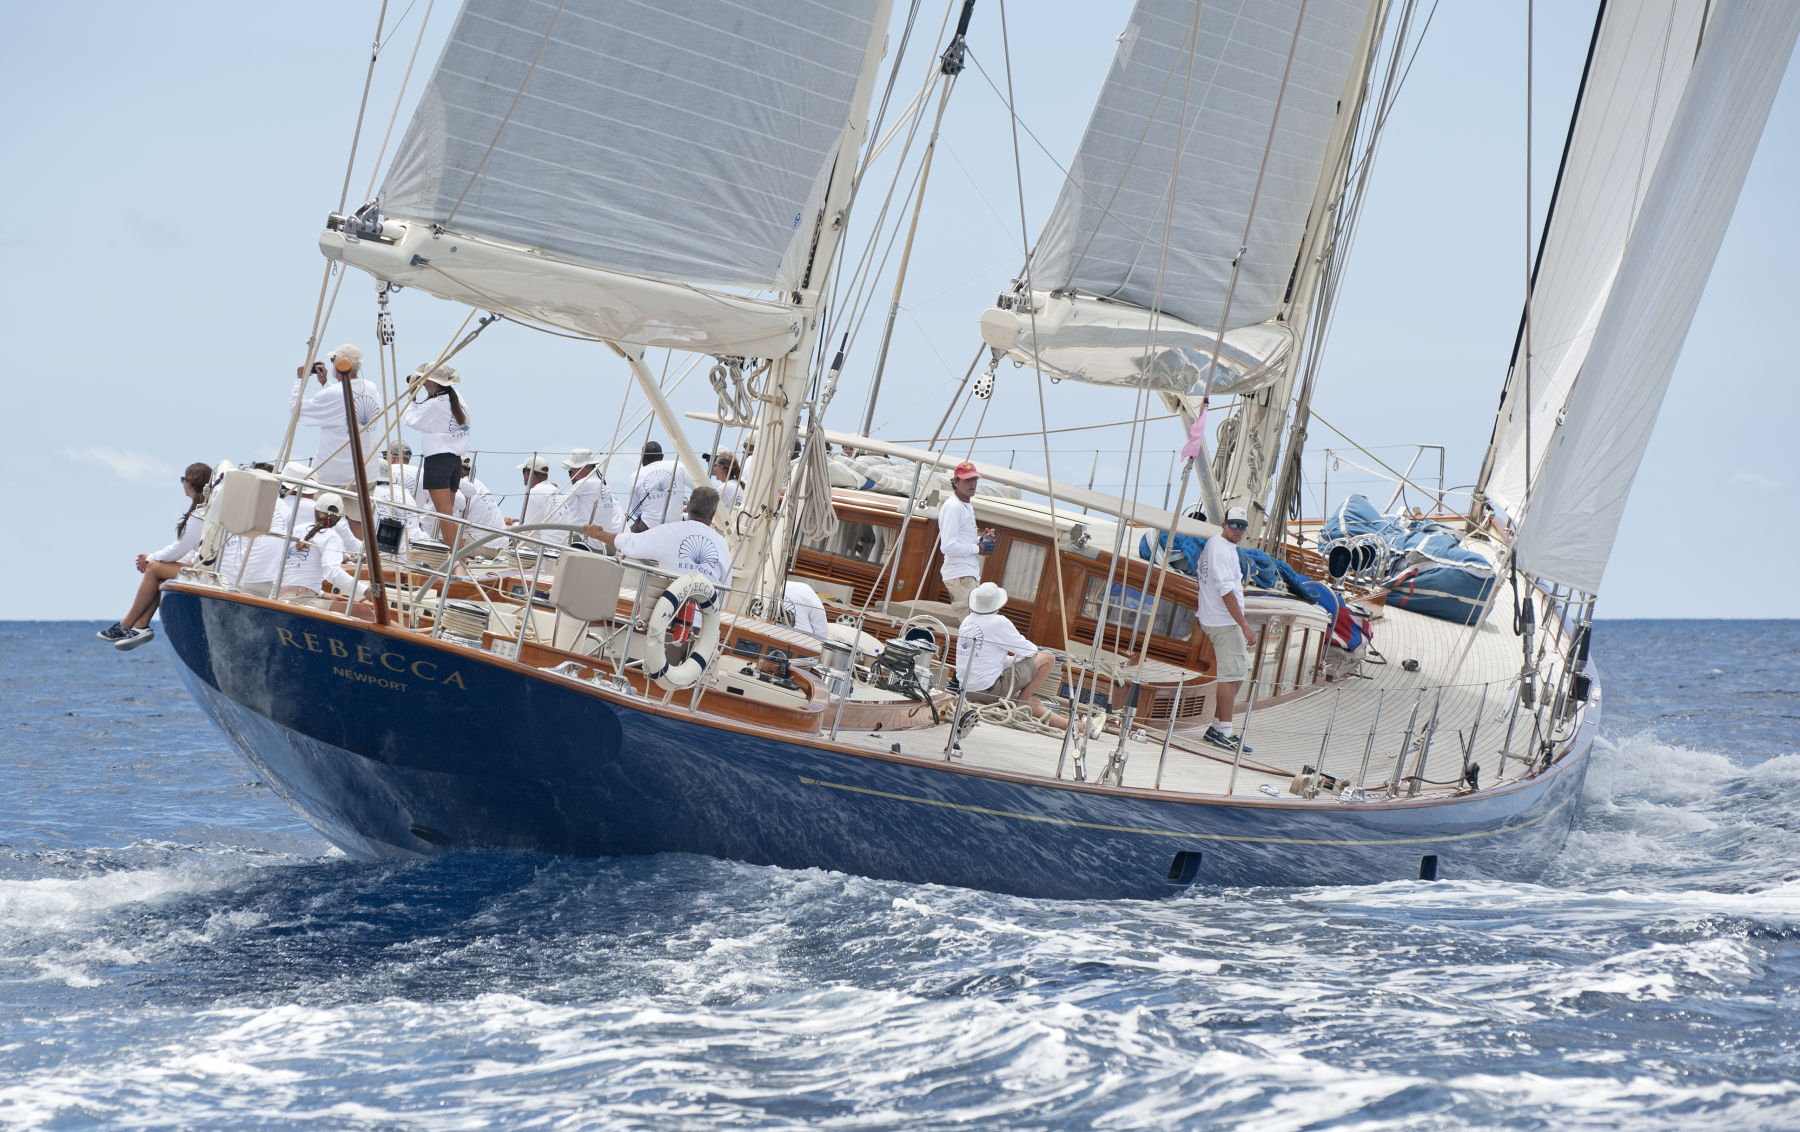 Superyacht Rebecca at The Antigua Classic Yacht Regatta 2016